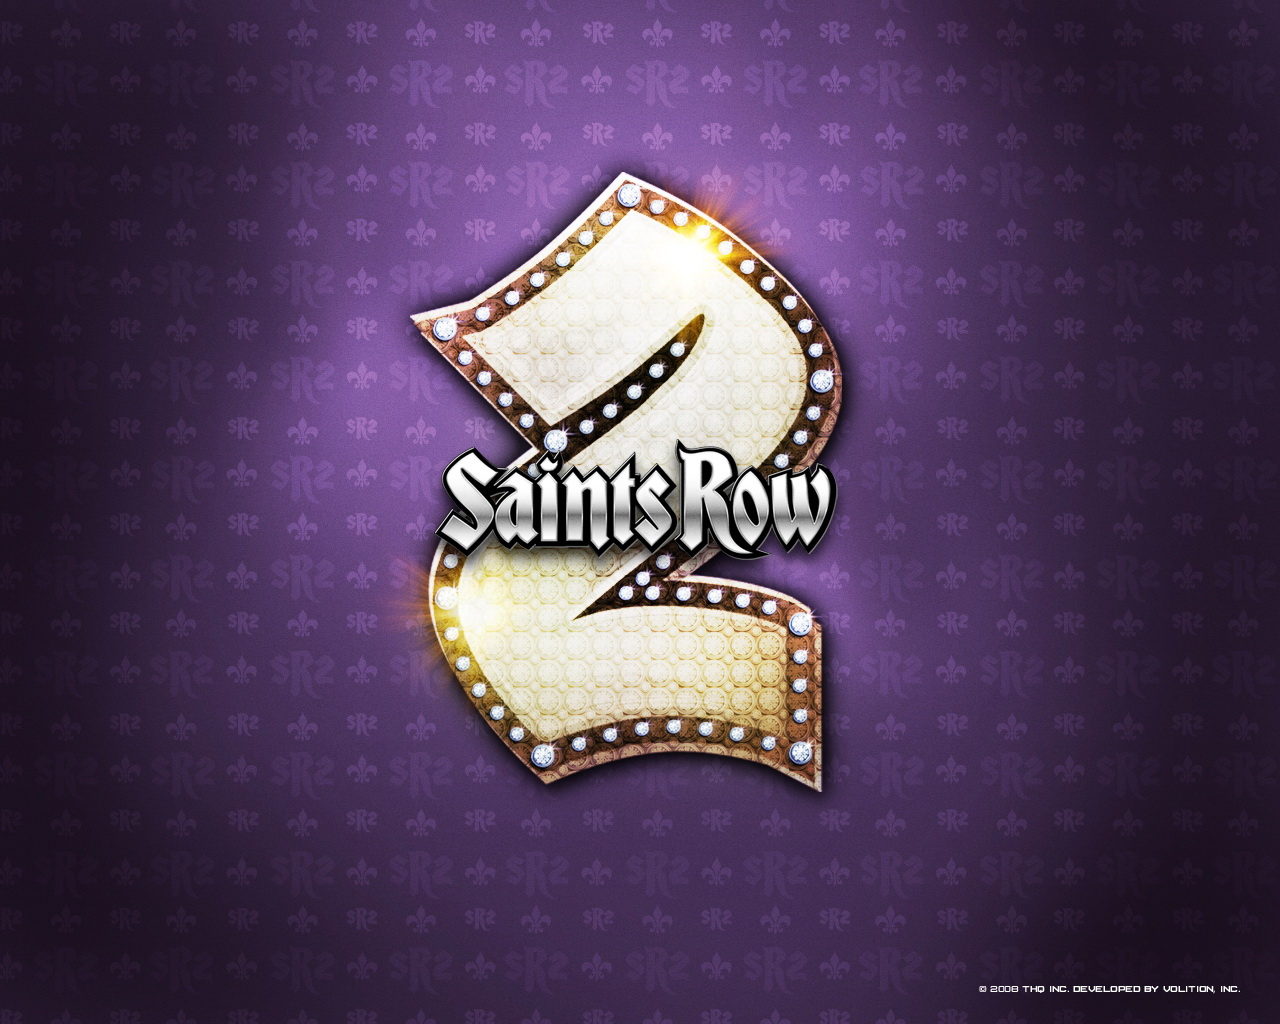 Latest Screens : Saints Row 2 Wallpapers